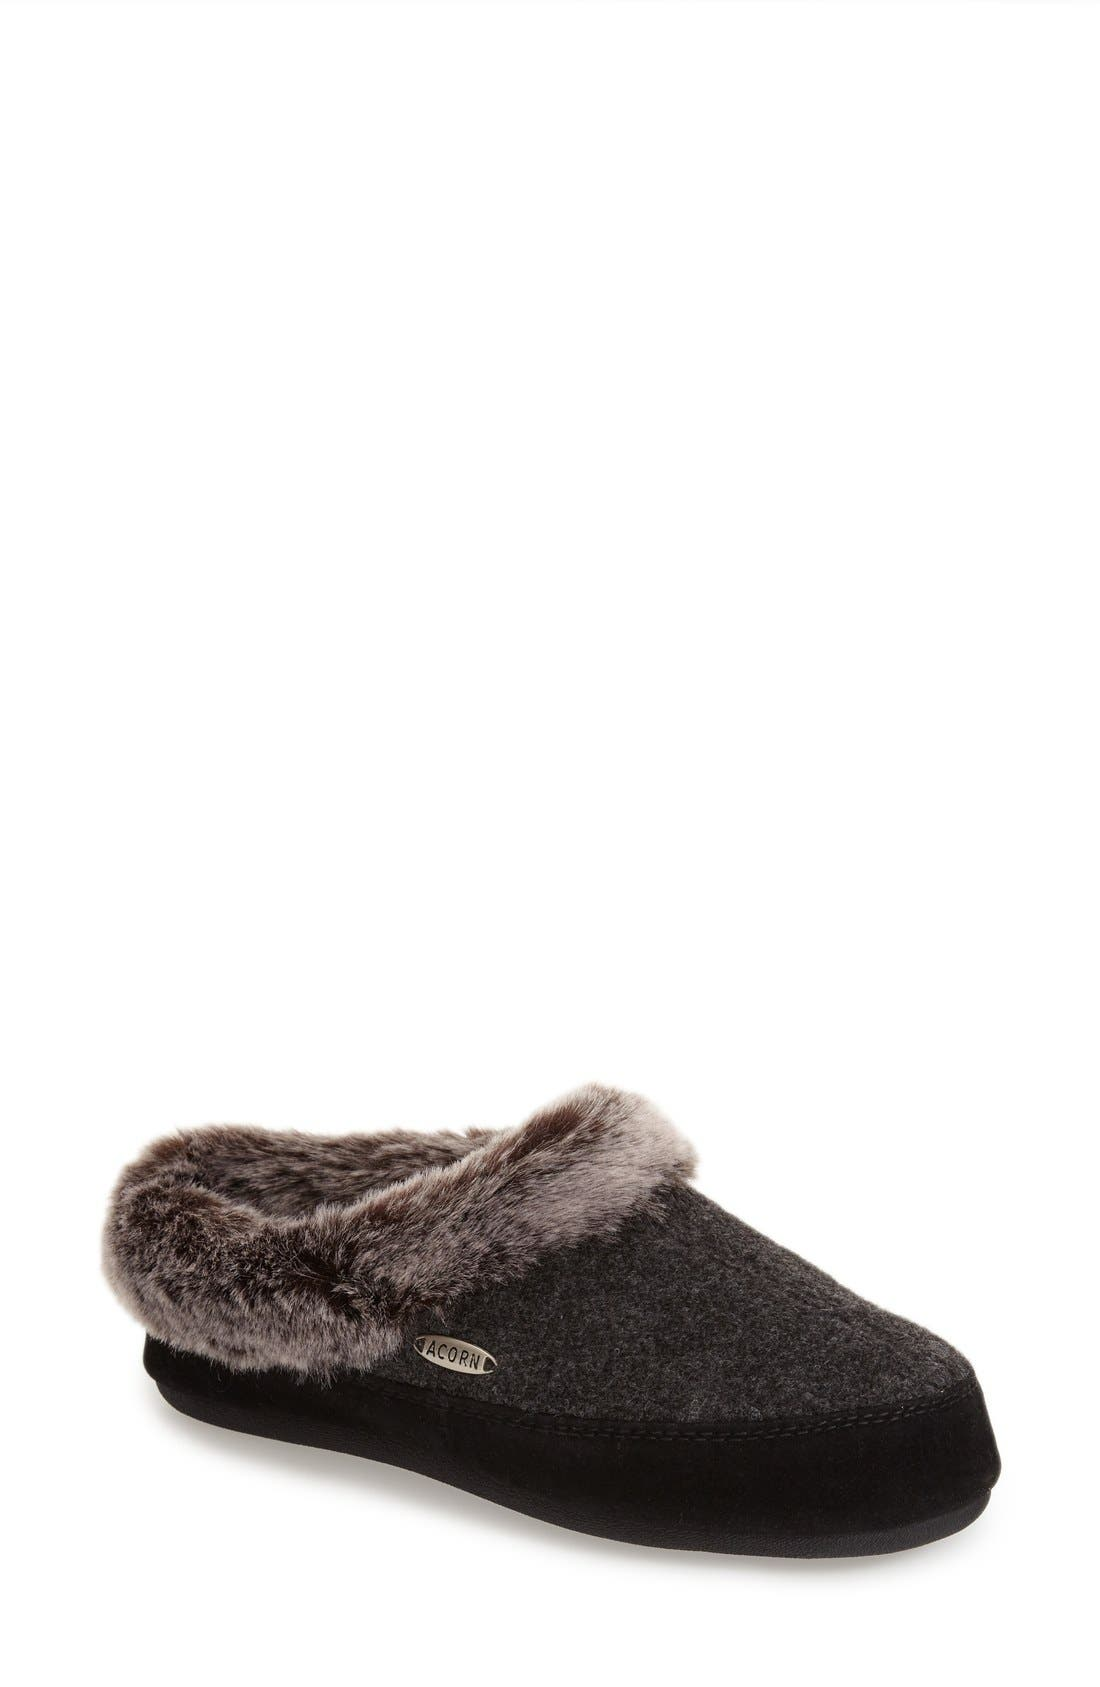 Acorn 'Cloud Chilla Scuff' Slipper (Women)